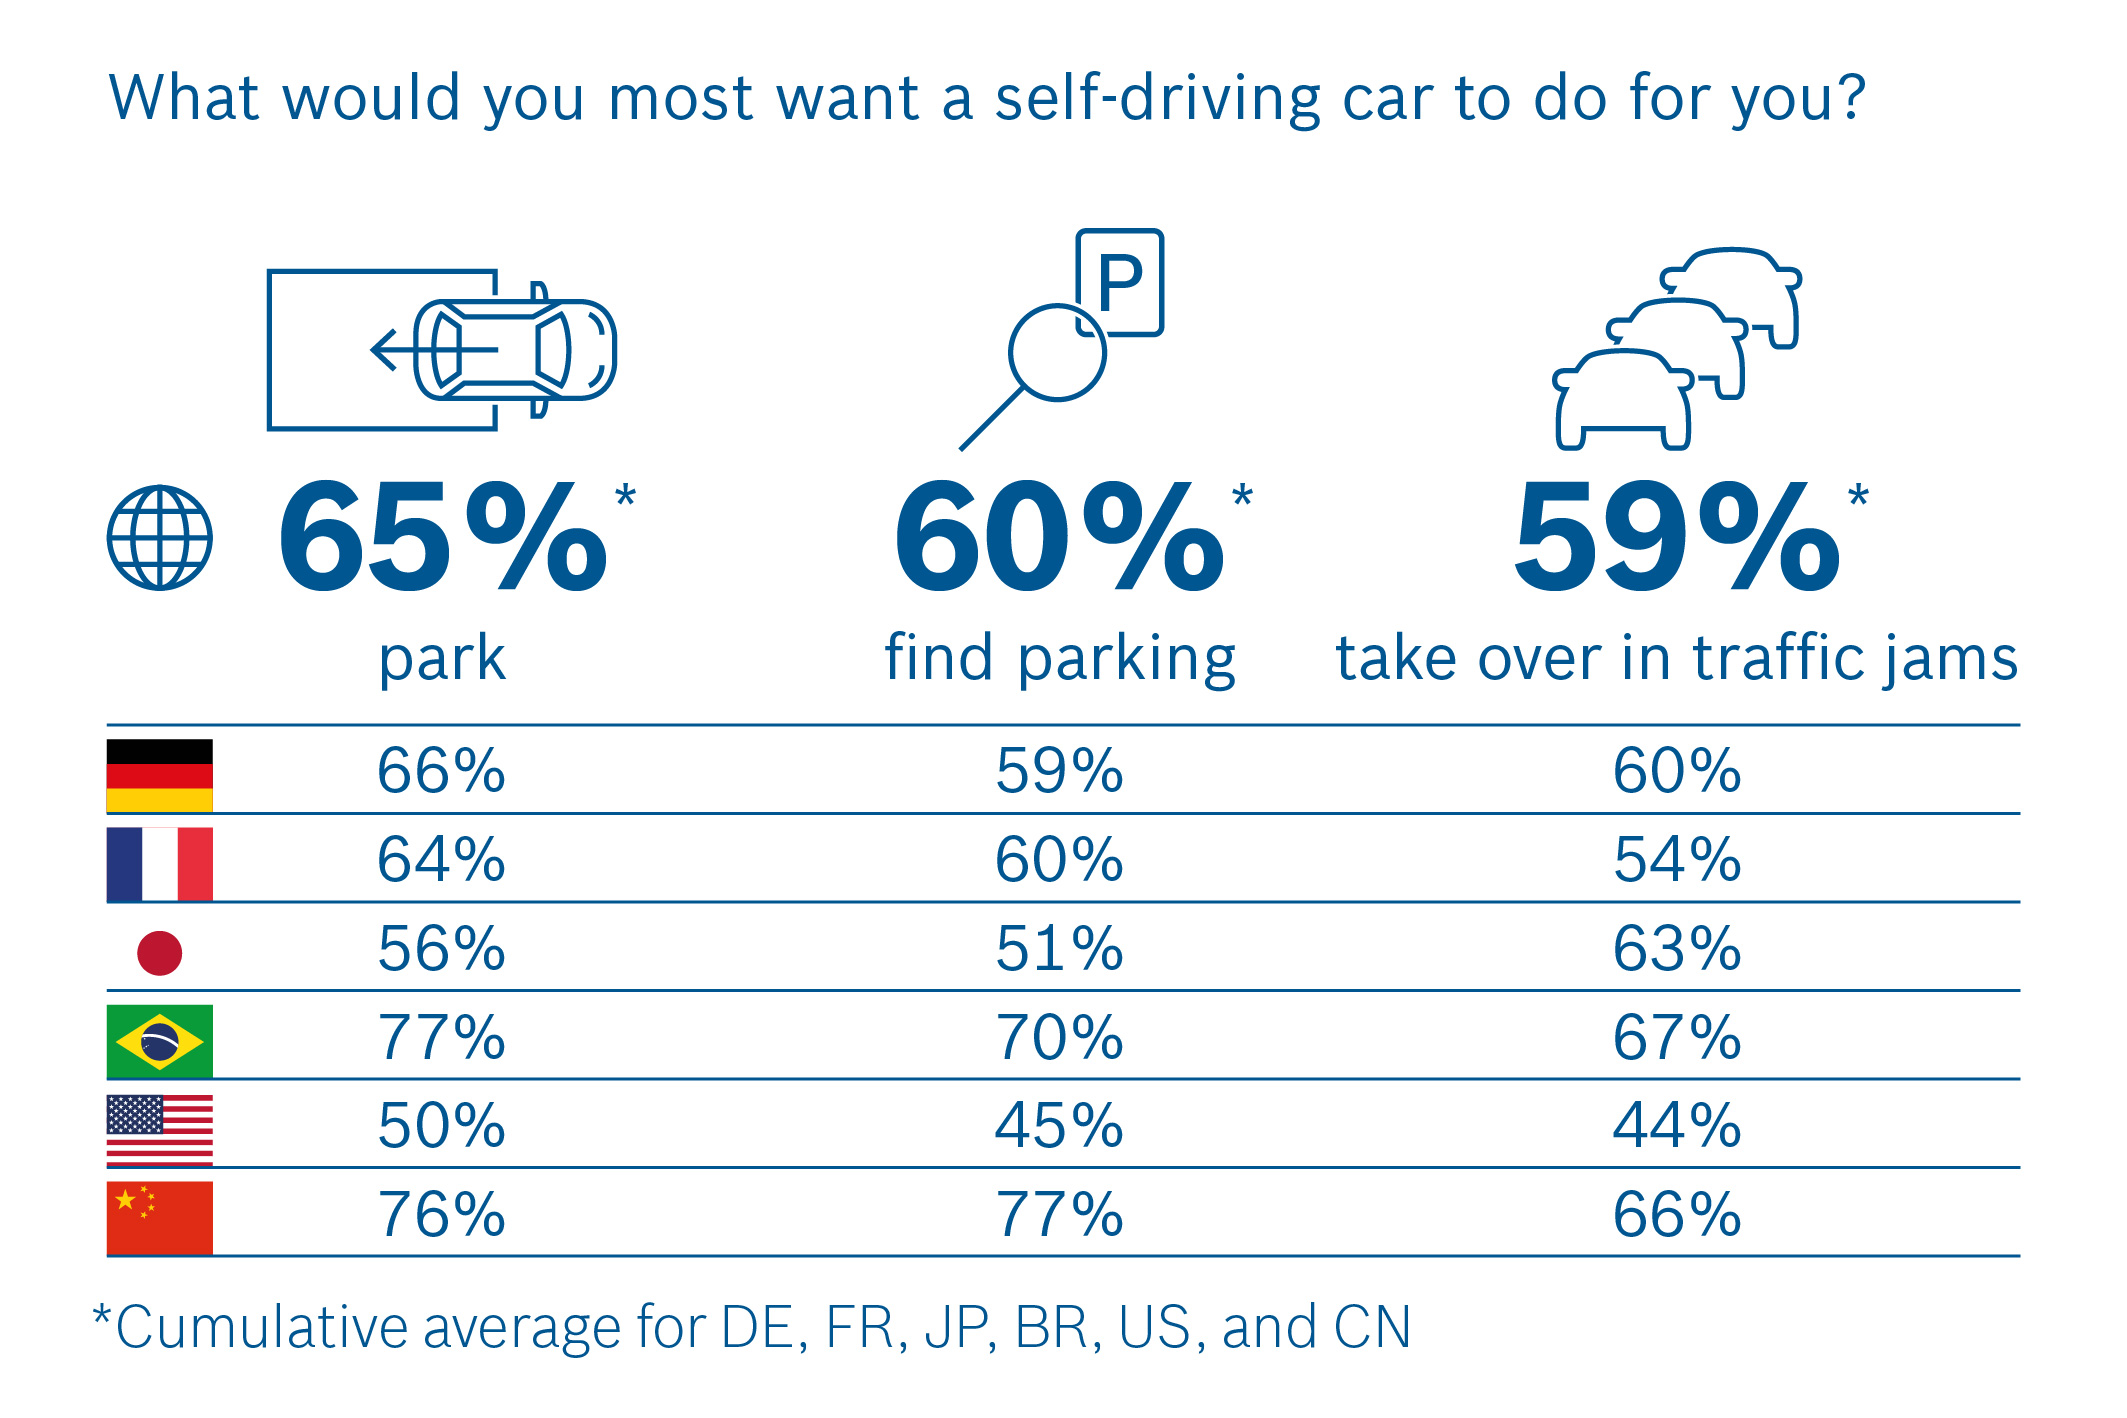 Many respondents want a self-driving car to relieve them of their stressful driving duties.